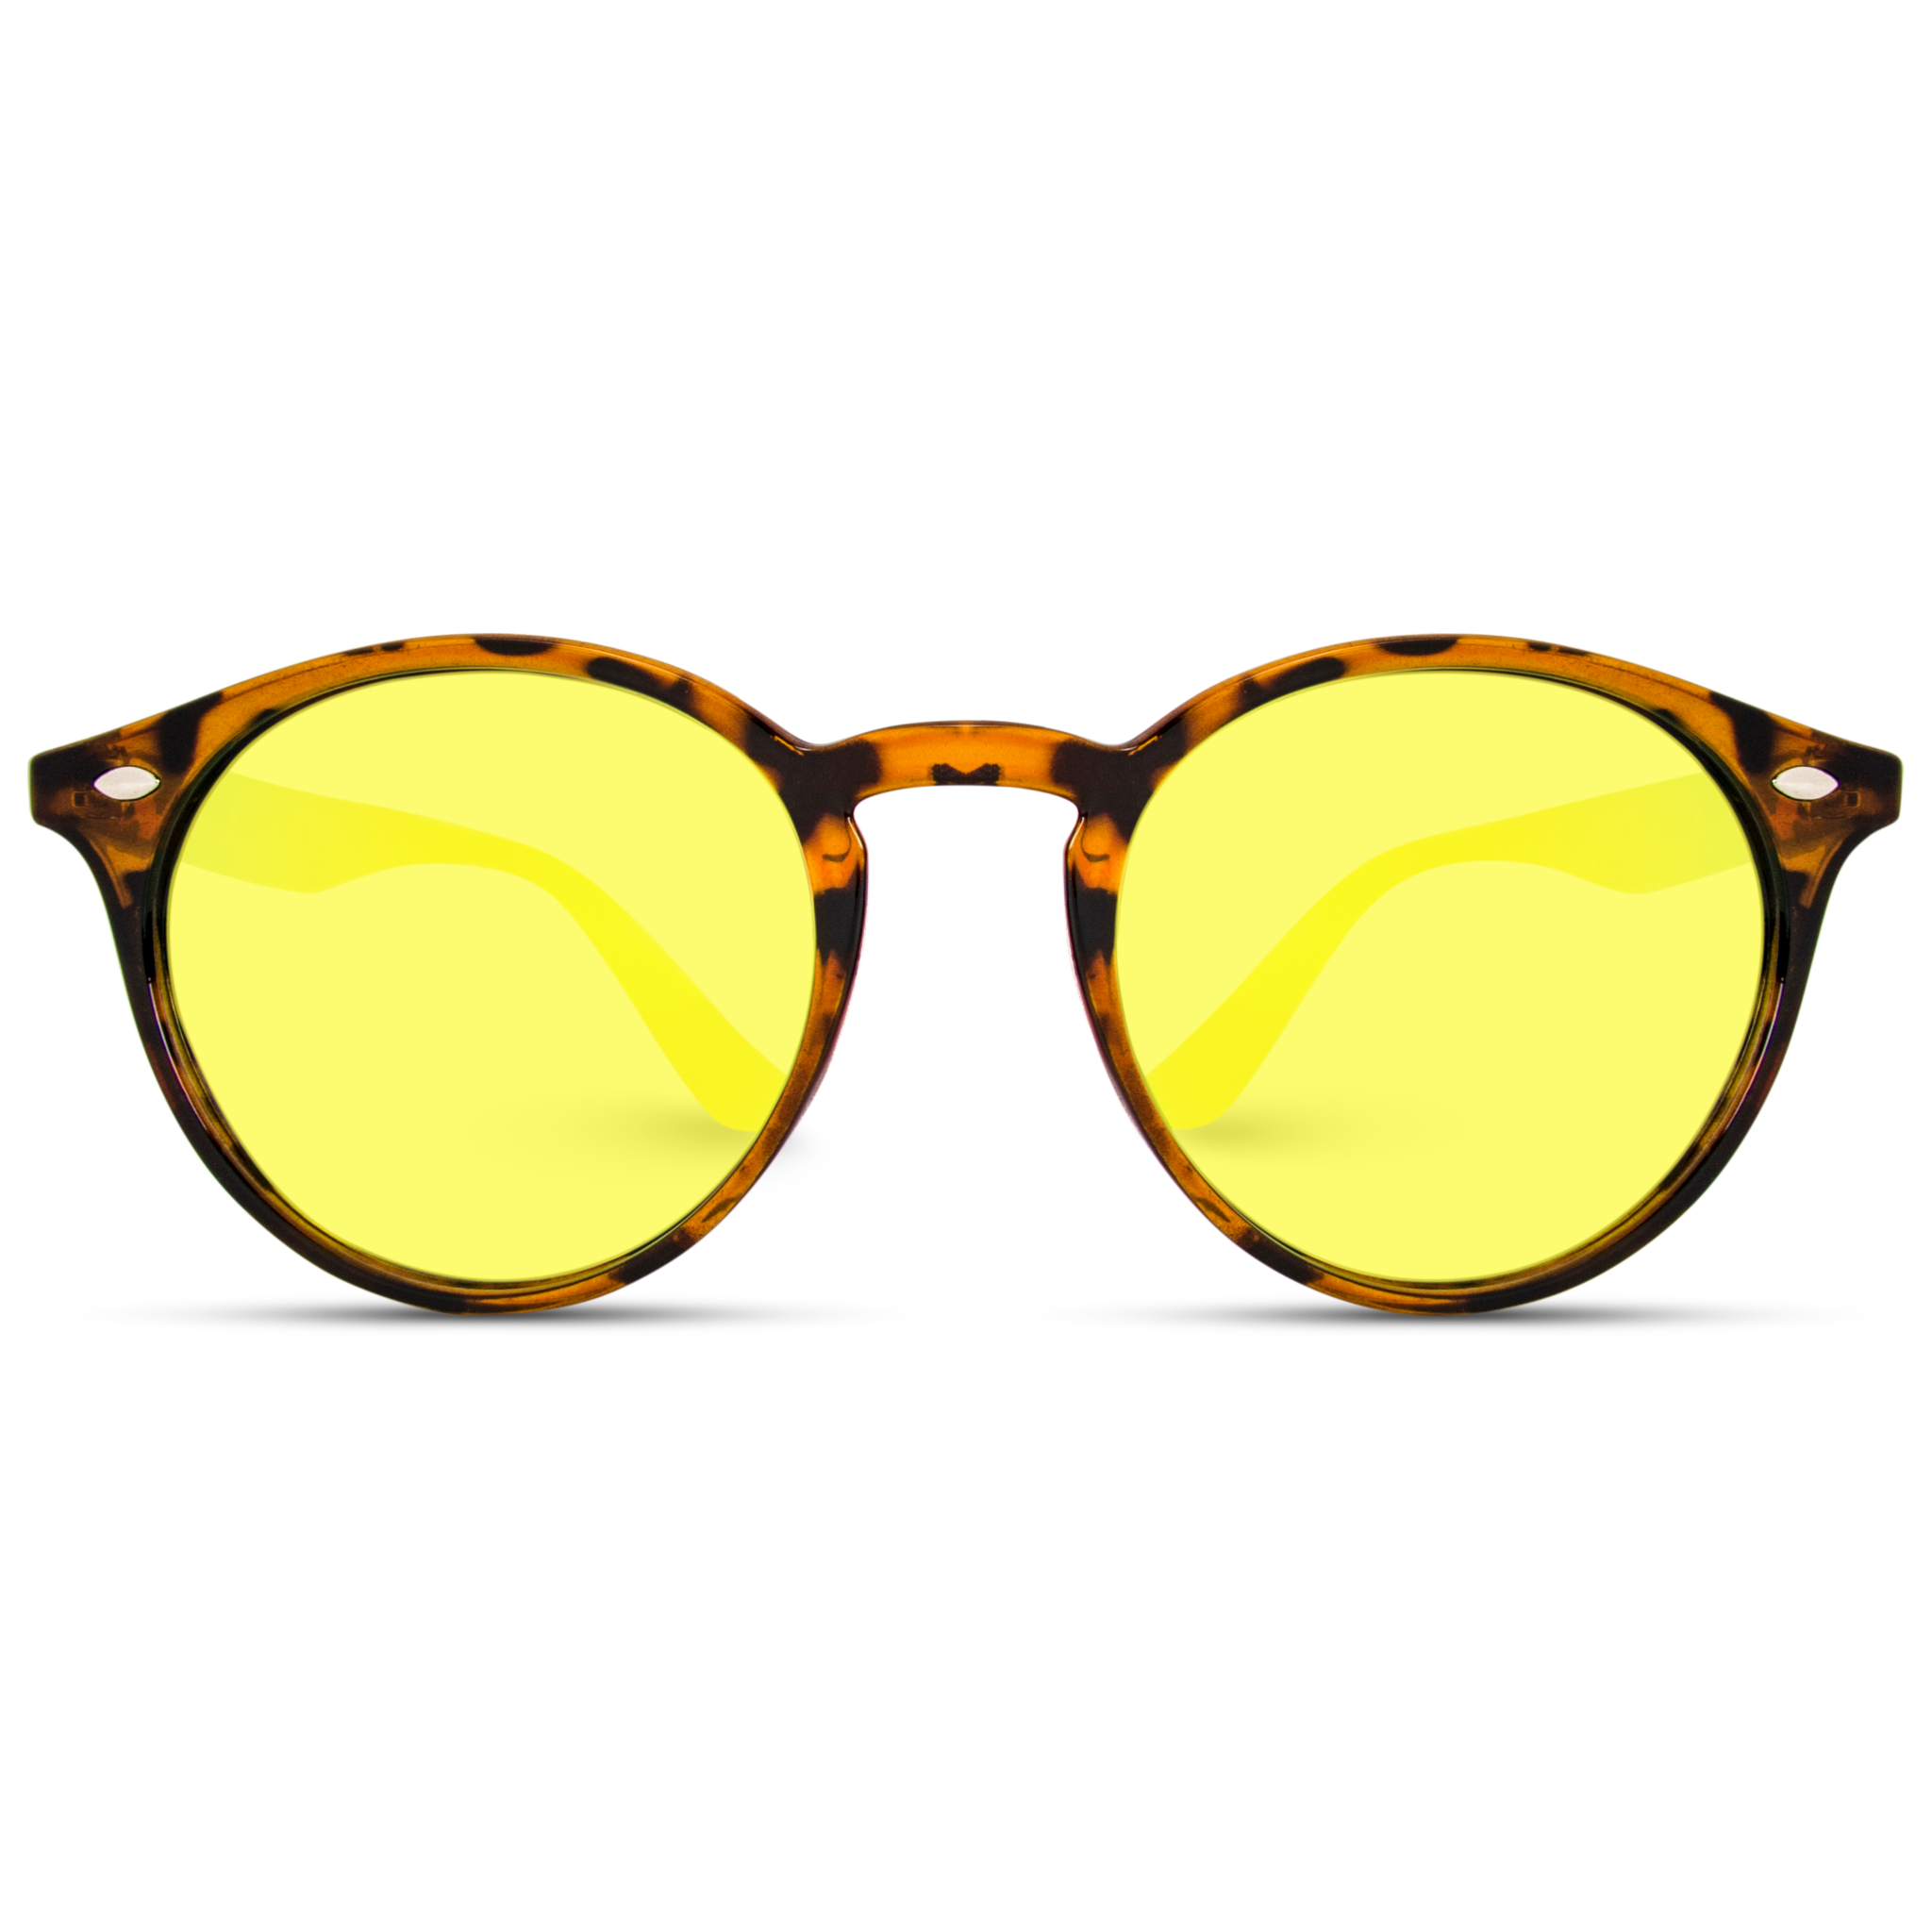 Yellow Lens Hipster Sunglasses New Vintage Retro Glasses Classic Round Sunglasses Perfect For Every Sunglass Frames Round Frame Sunglasses Black Mirror Frame